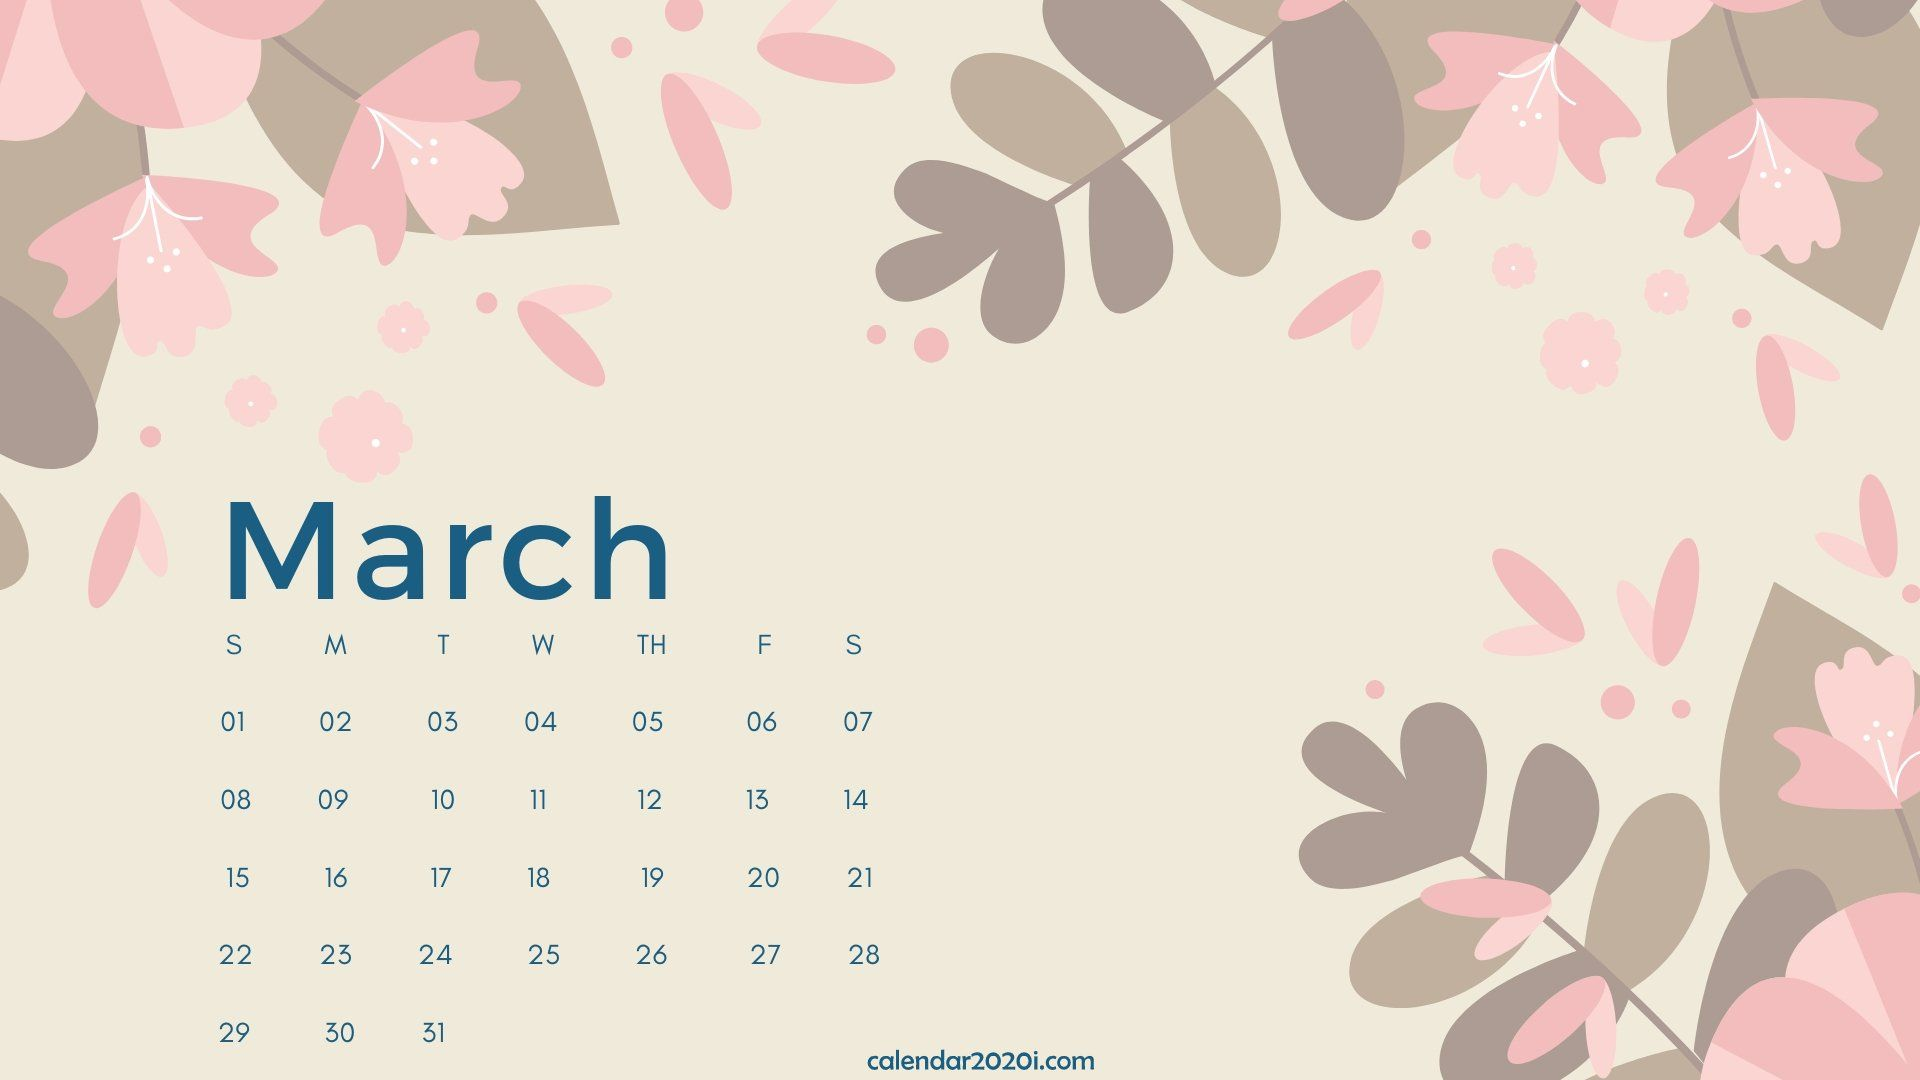 2020 Calendar Monthly HD Wallpapers Calendar 2020 Calendar 1920x1080